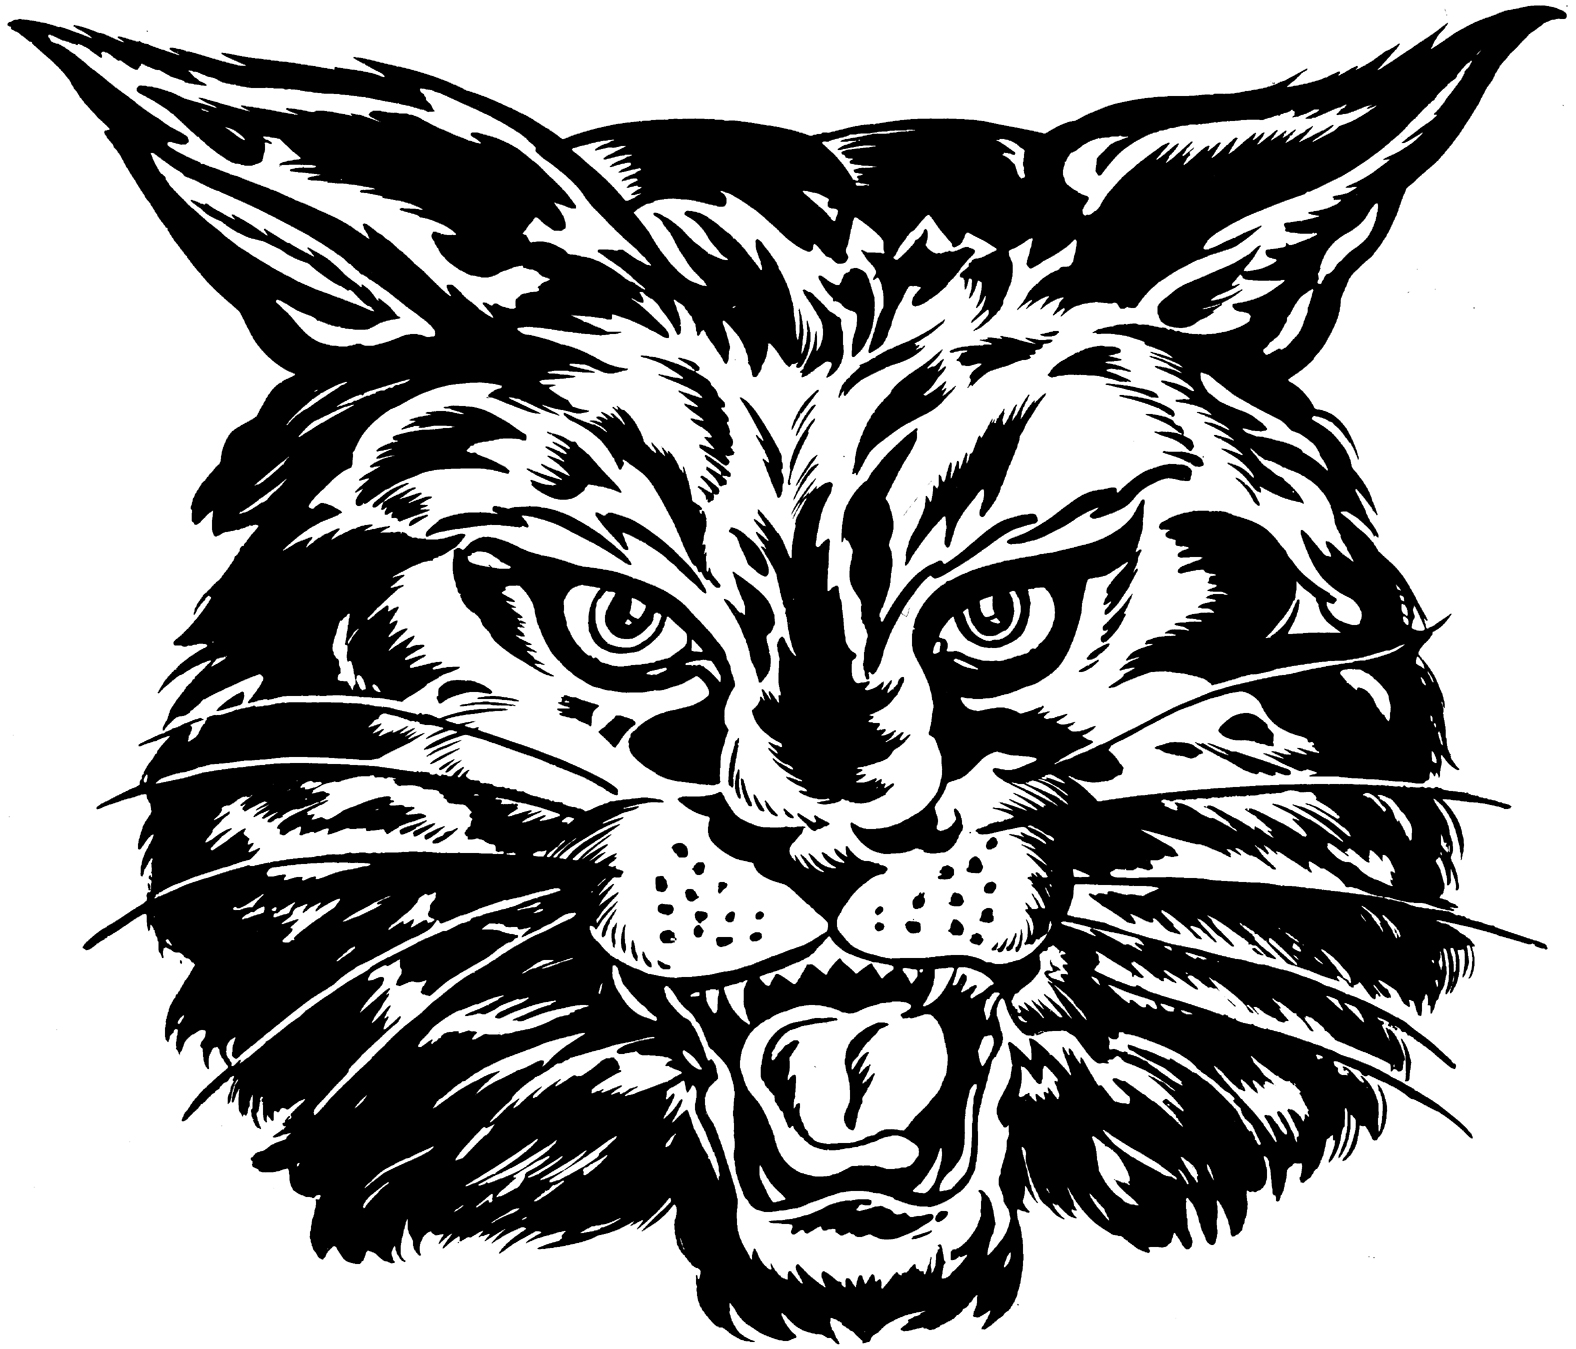 bobcat face drawing at free for personal use bobcat face drawing of your choice. Black Bedroom Furniture Sets. Home Design Ideas